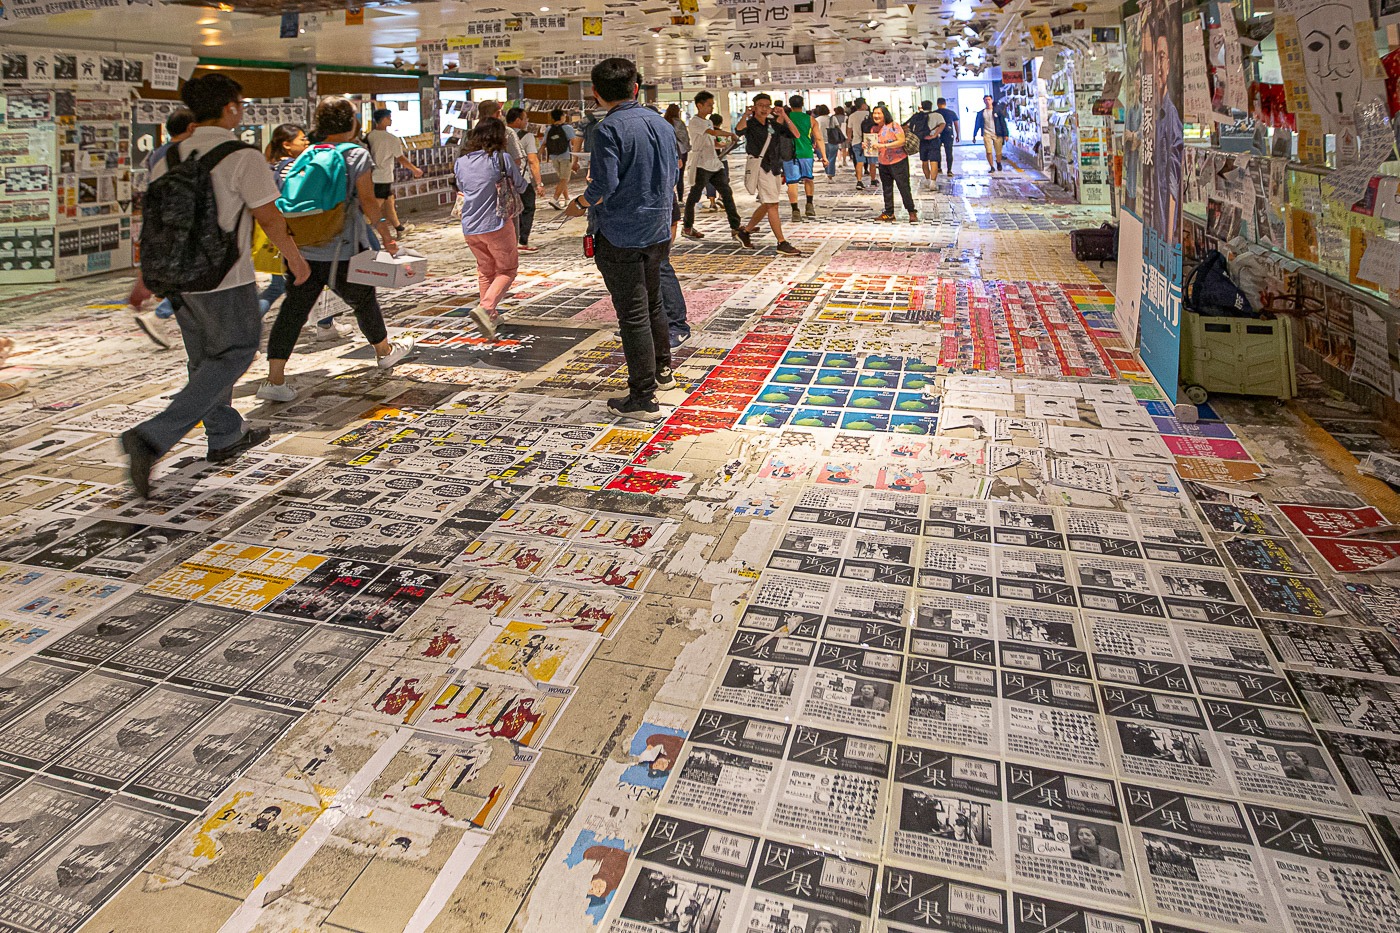 In this photo of the Tsing Yi pedestrian walkway, the floor, walls and ceiling are covered in political posters, often forcing people to walk on images of disliked political leaders.